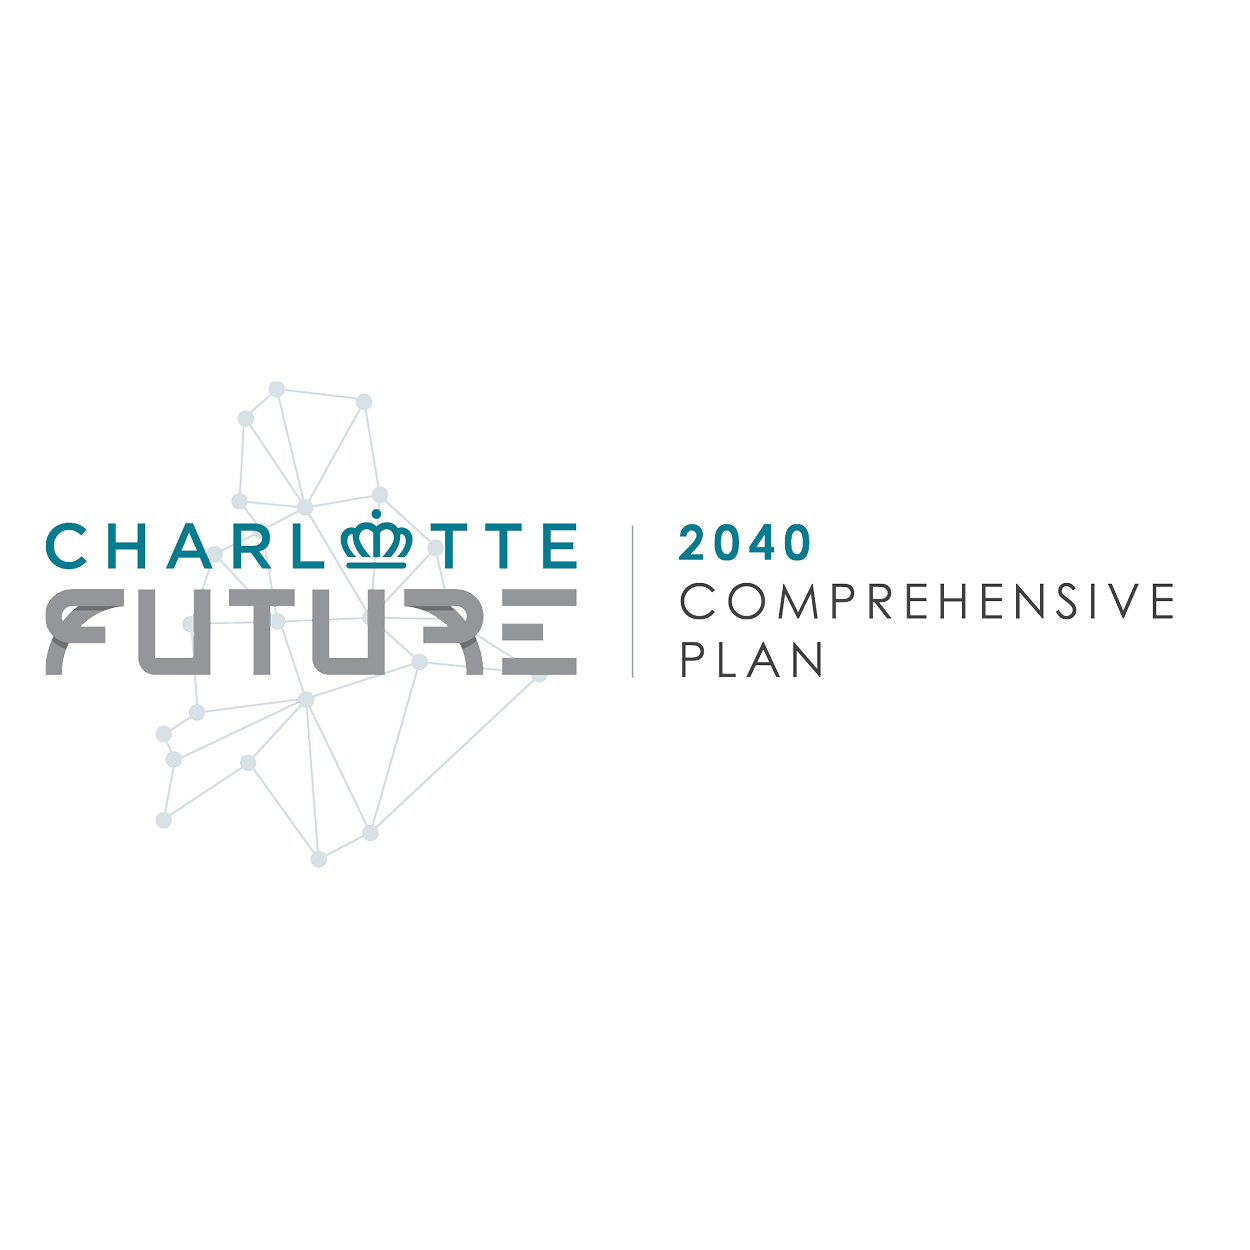 City of Charlotte2040 Comprehensive Plan